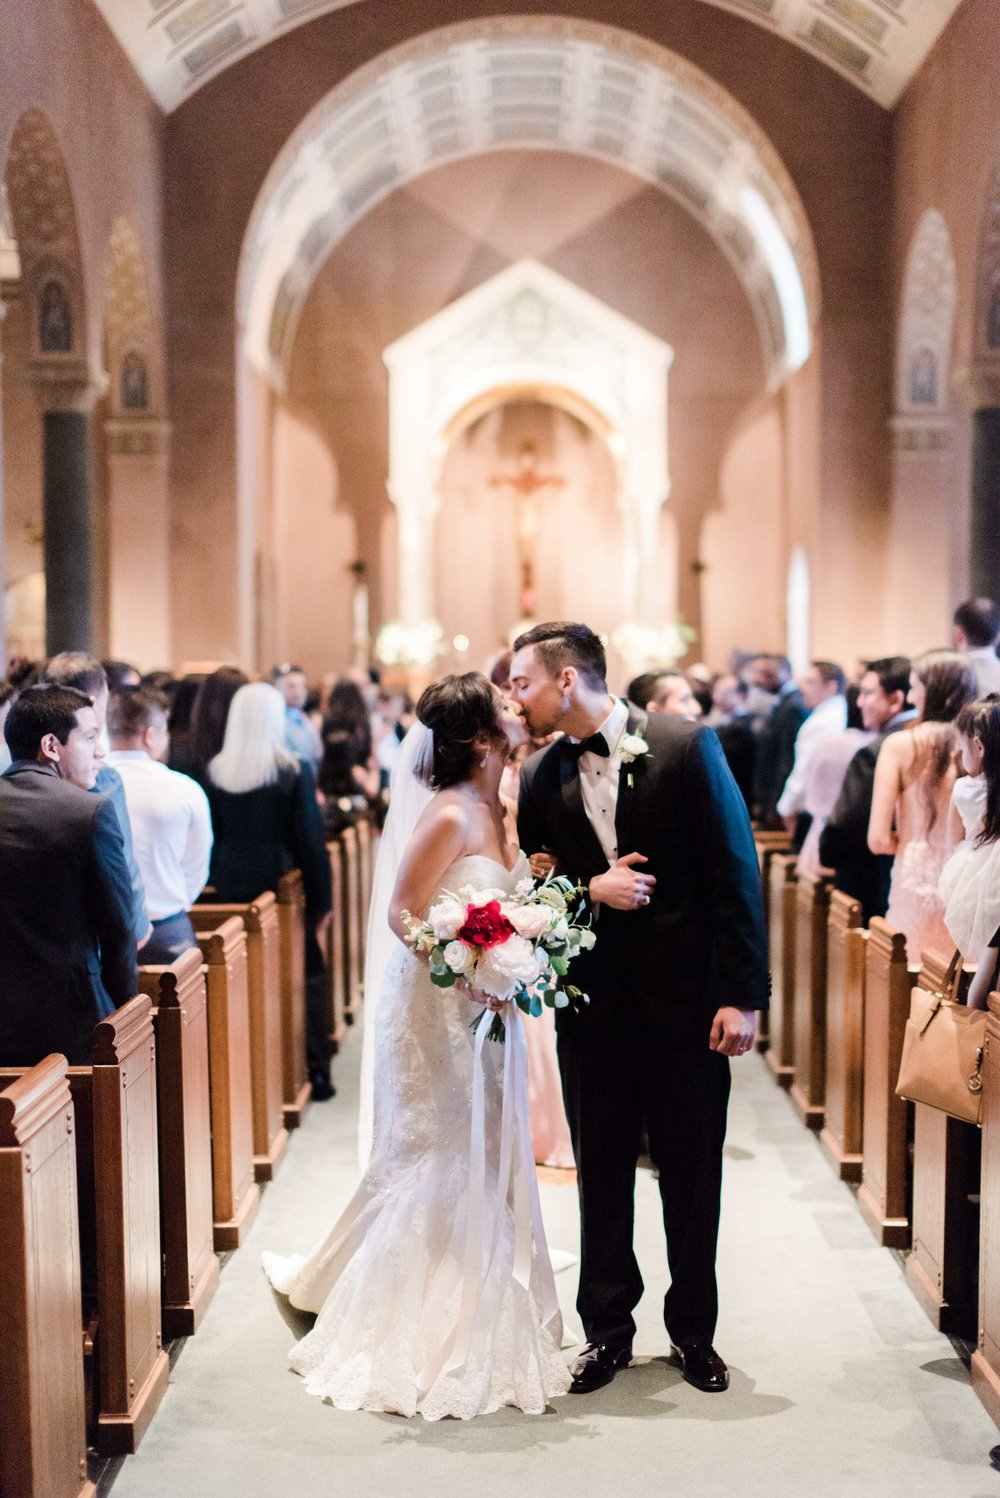 Houston-Wedding-Photography-St.-Anne-Catholic-Church-Houston-Wedding-The-Bell-Tower-on-34th-reception-wedding-film-41.jpg